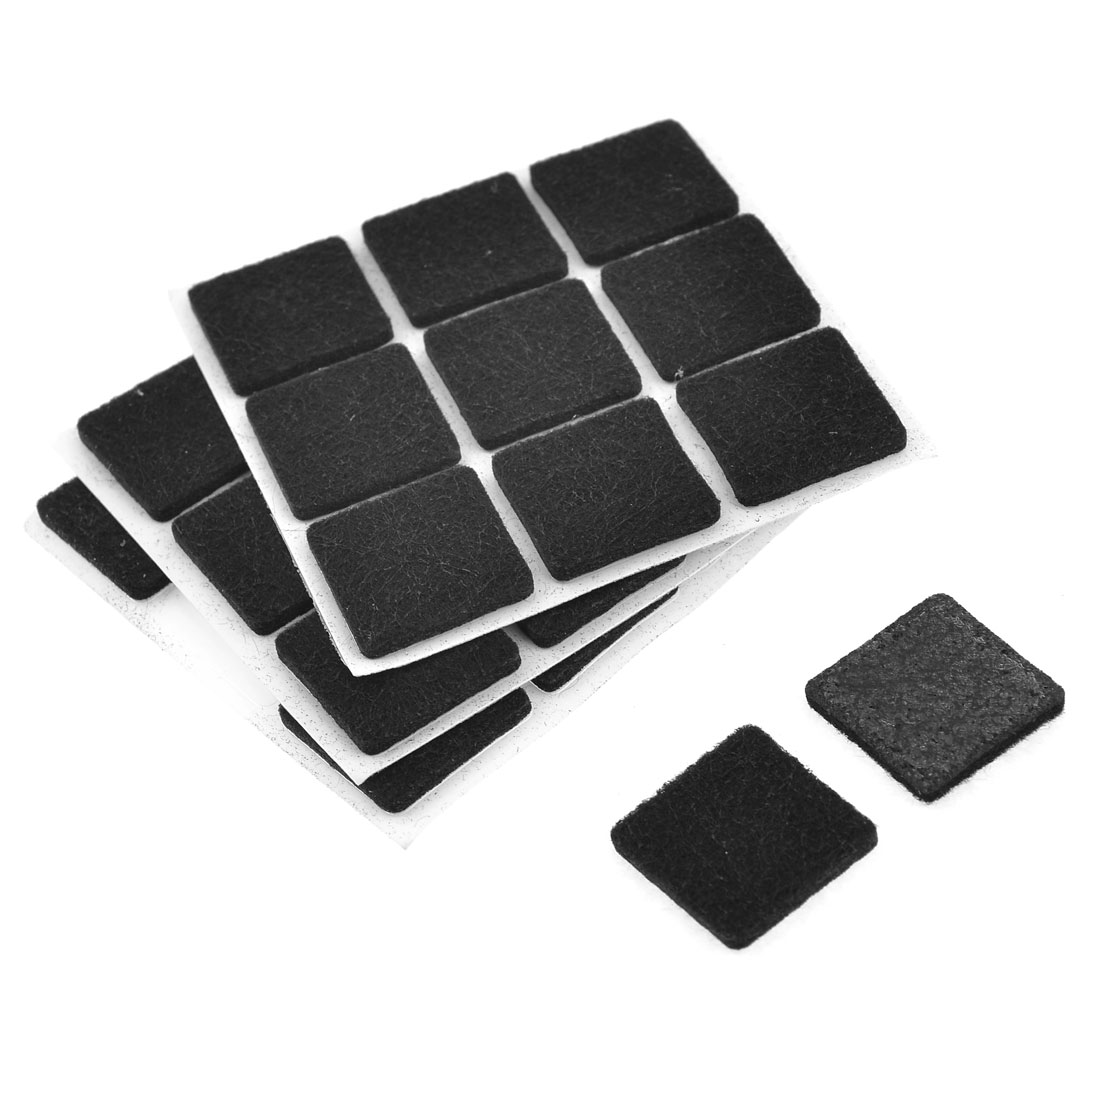 27 Pcs Black Square Corner Tables Chairs Protection Square Mat Pad 2cm x 2cm